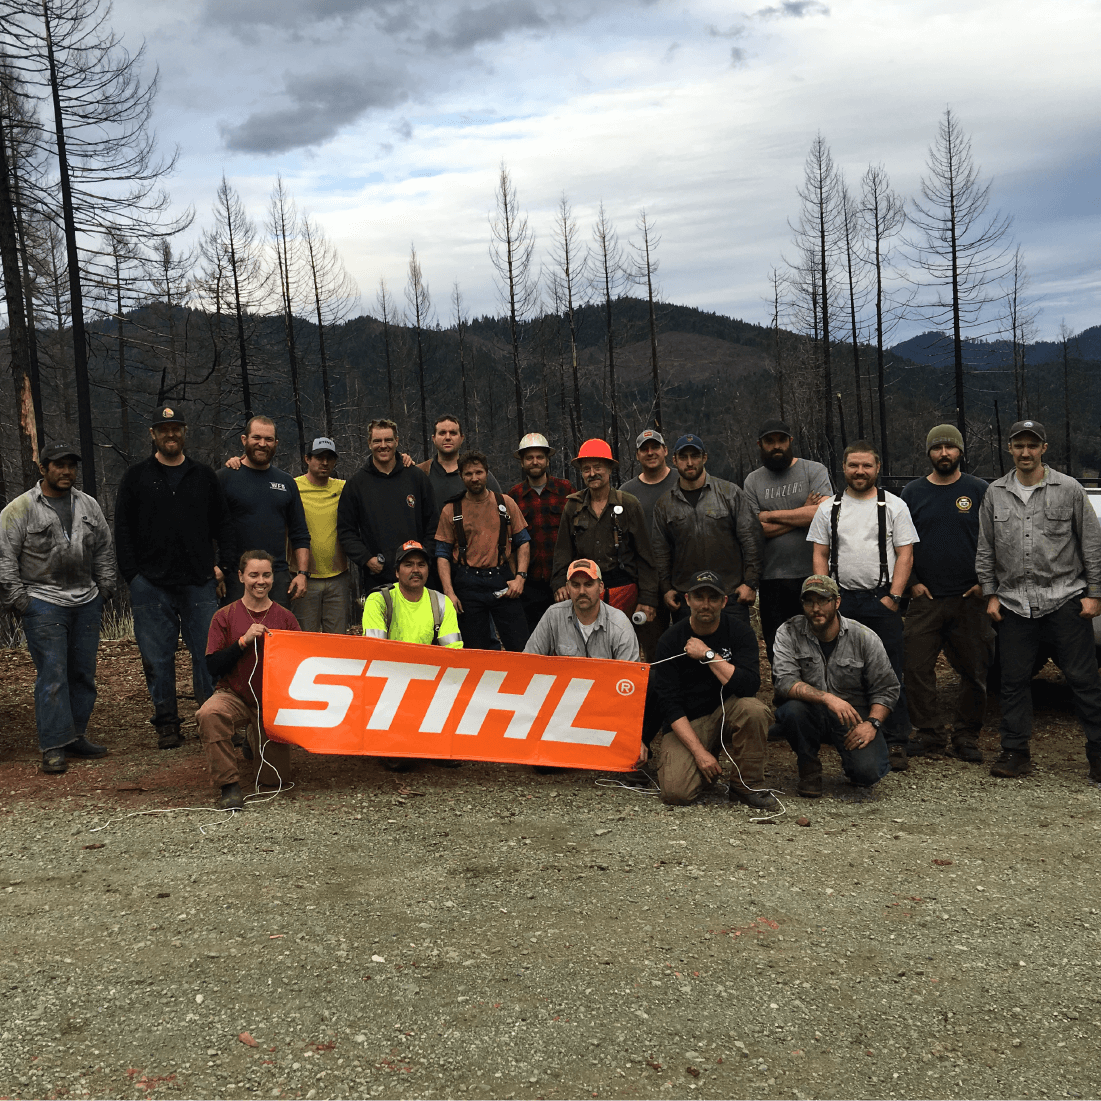 Group gathers for a photo after a fire-weakened tree workshop, holding STIHL sign.